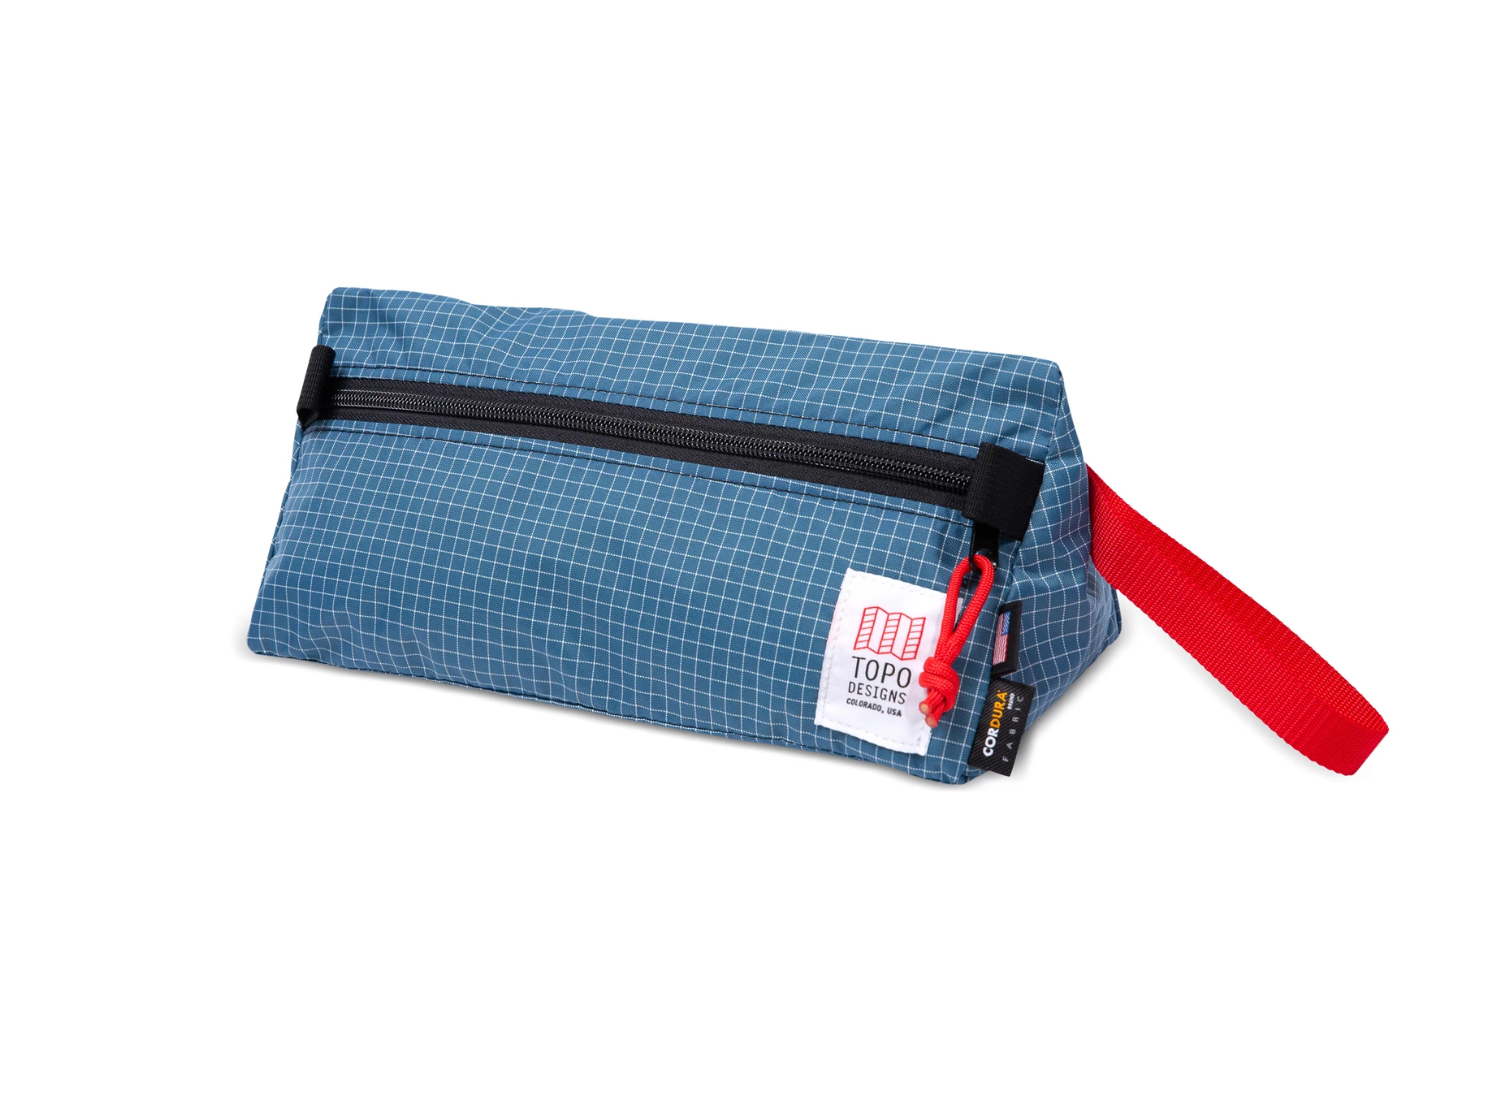 Topo Designs Dopp Kit - Blue/White Ripstop